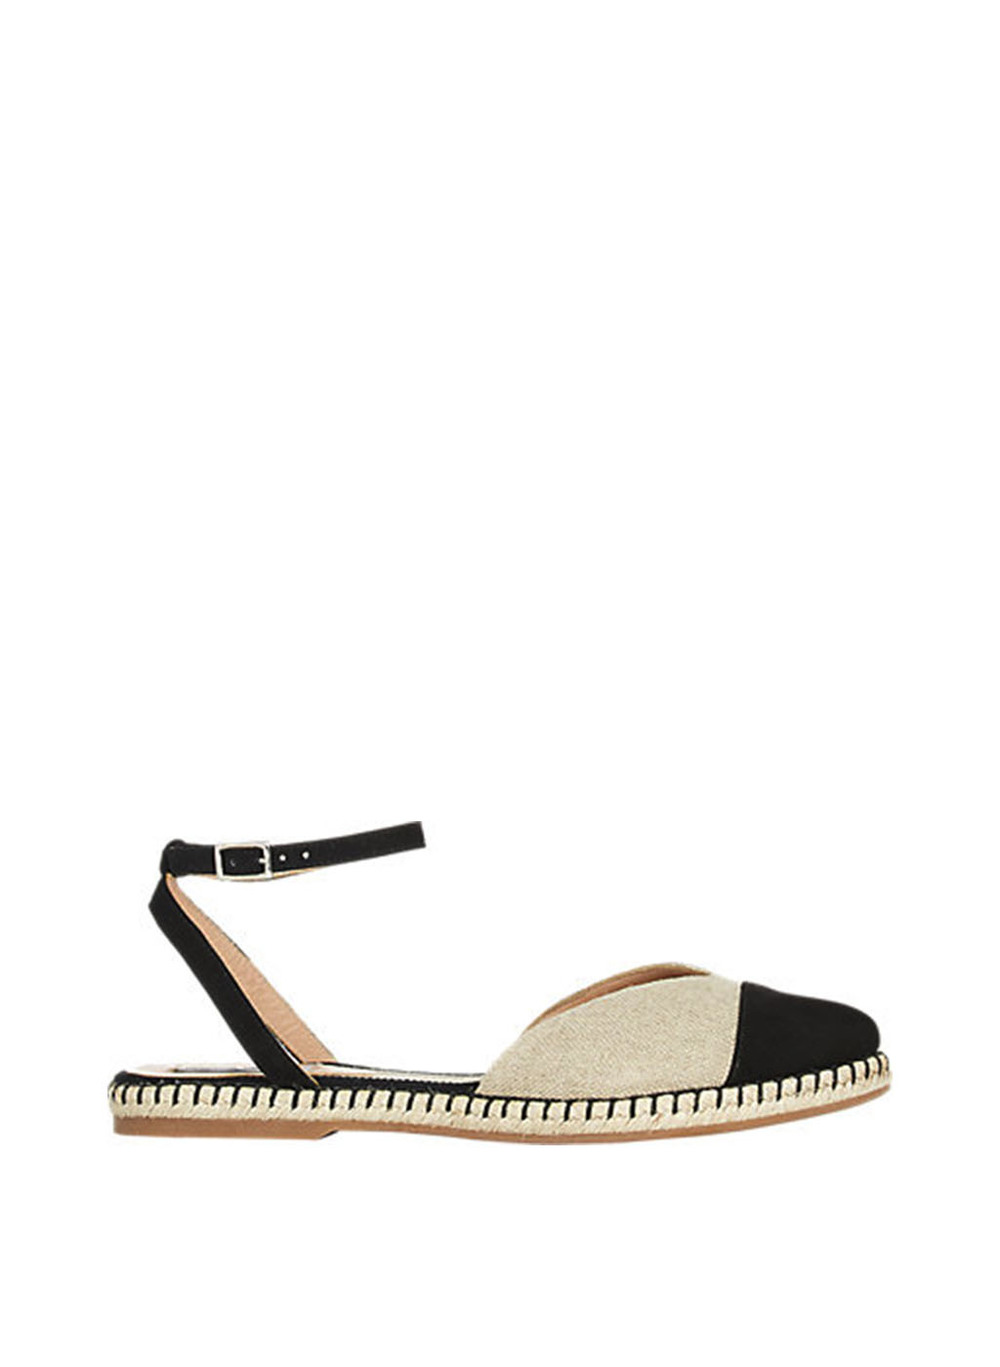 Two Tone Espadrilles, Tabitha Simmons